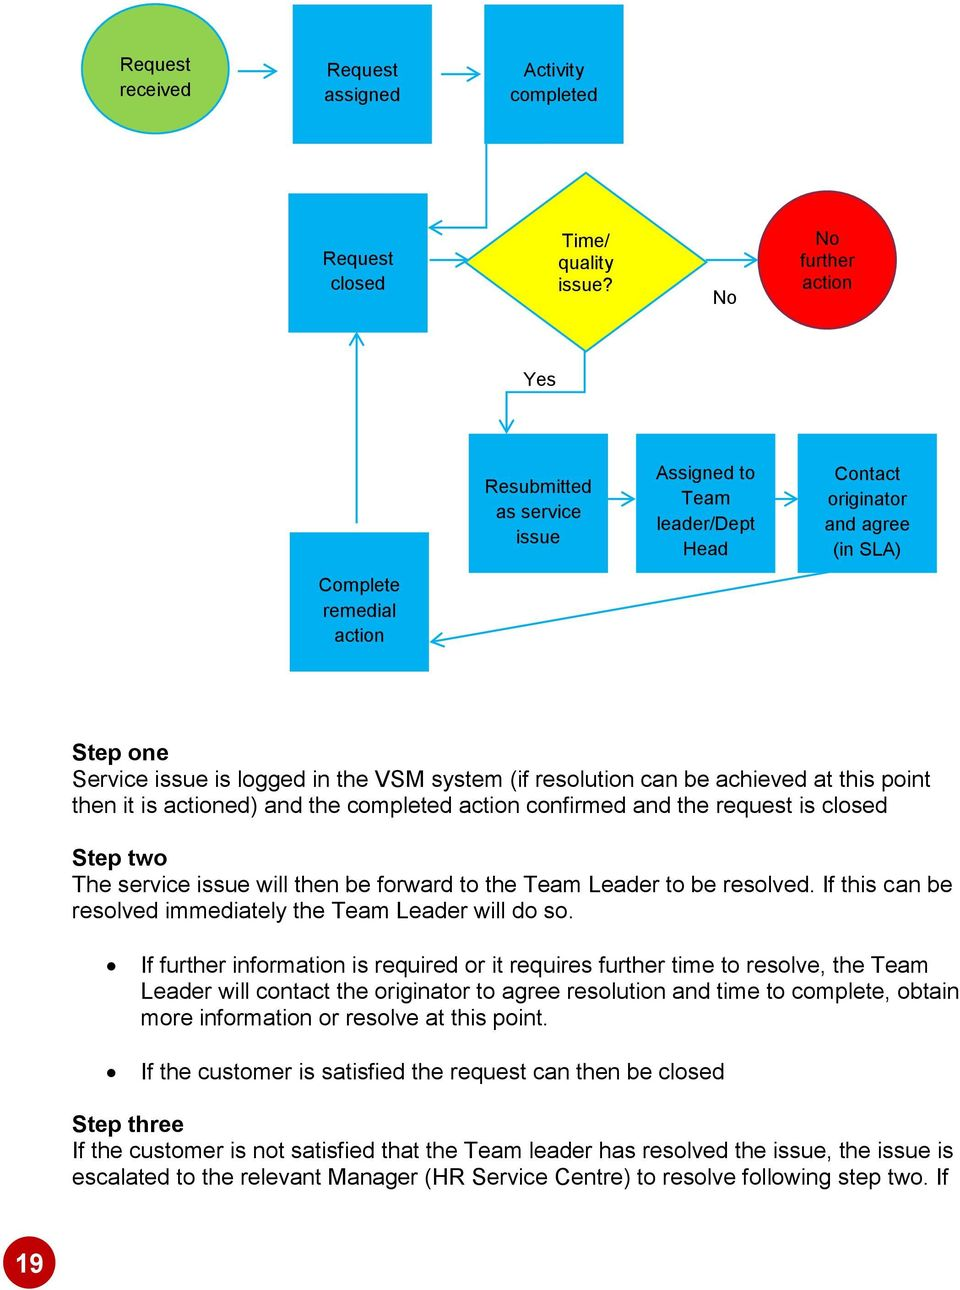 system (if resolution can be achieved at this point then it is actioned) and the completed action confirmed and the request is closed Step two The service issue will then be forward to the Leader to